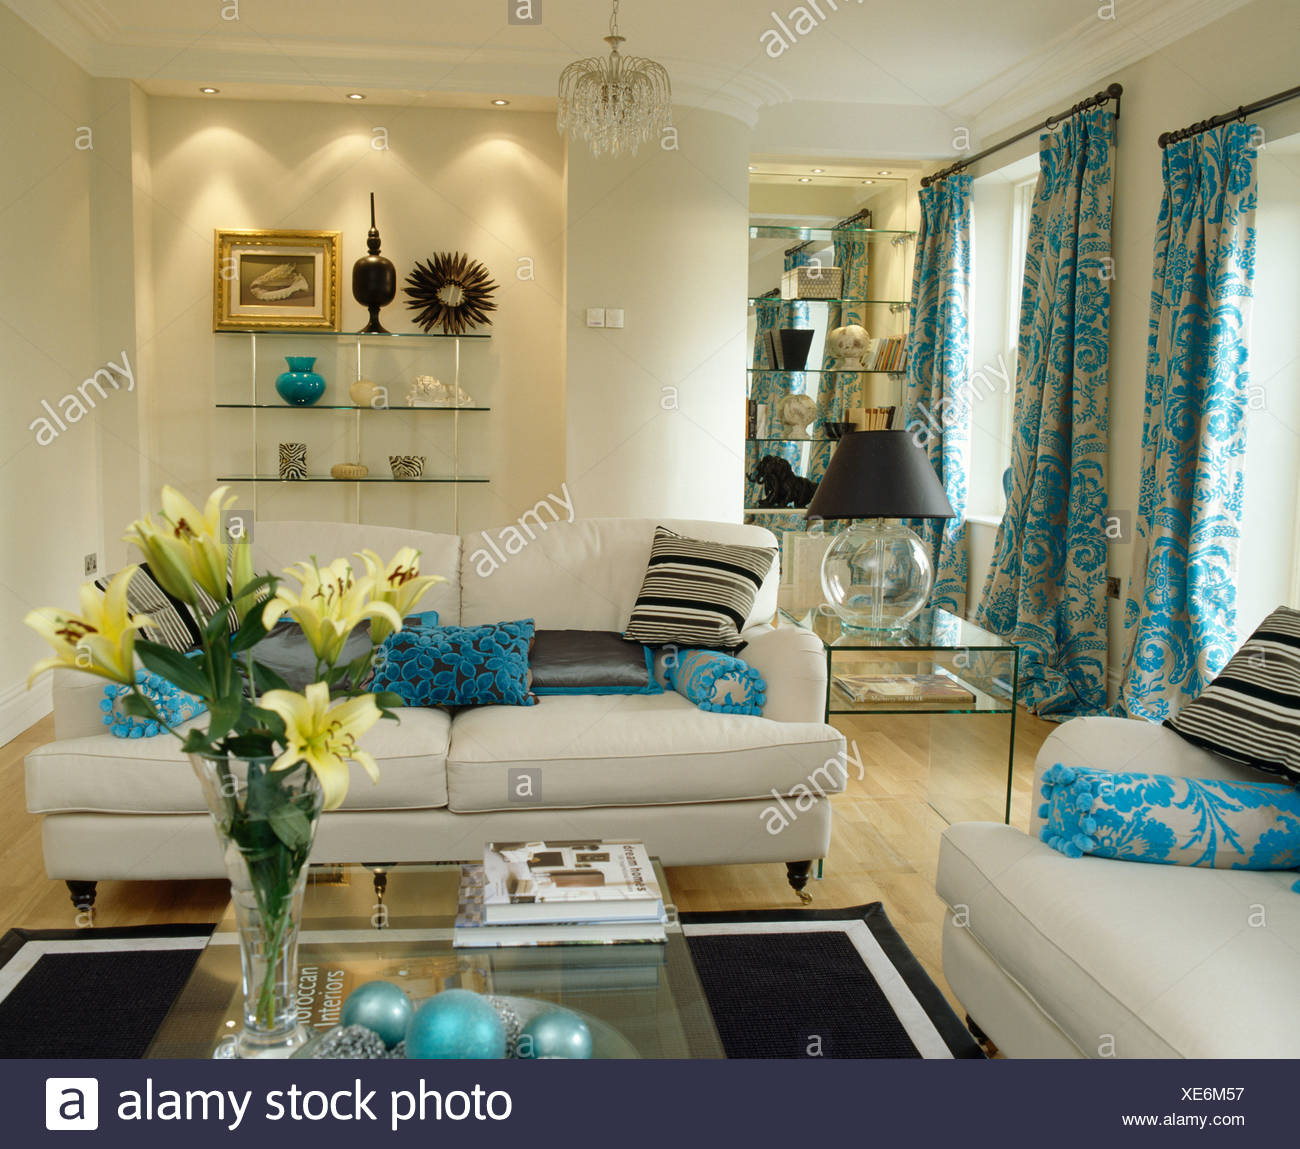 Recessed lighting above alcove shelving in cream living room with turquoise cushions on white sofas - Stock Image